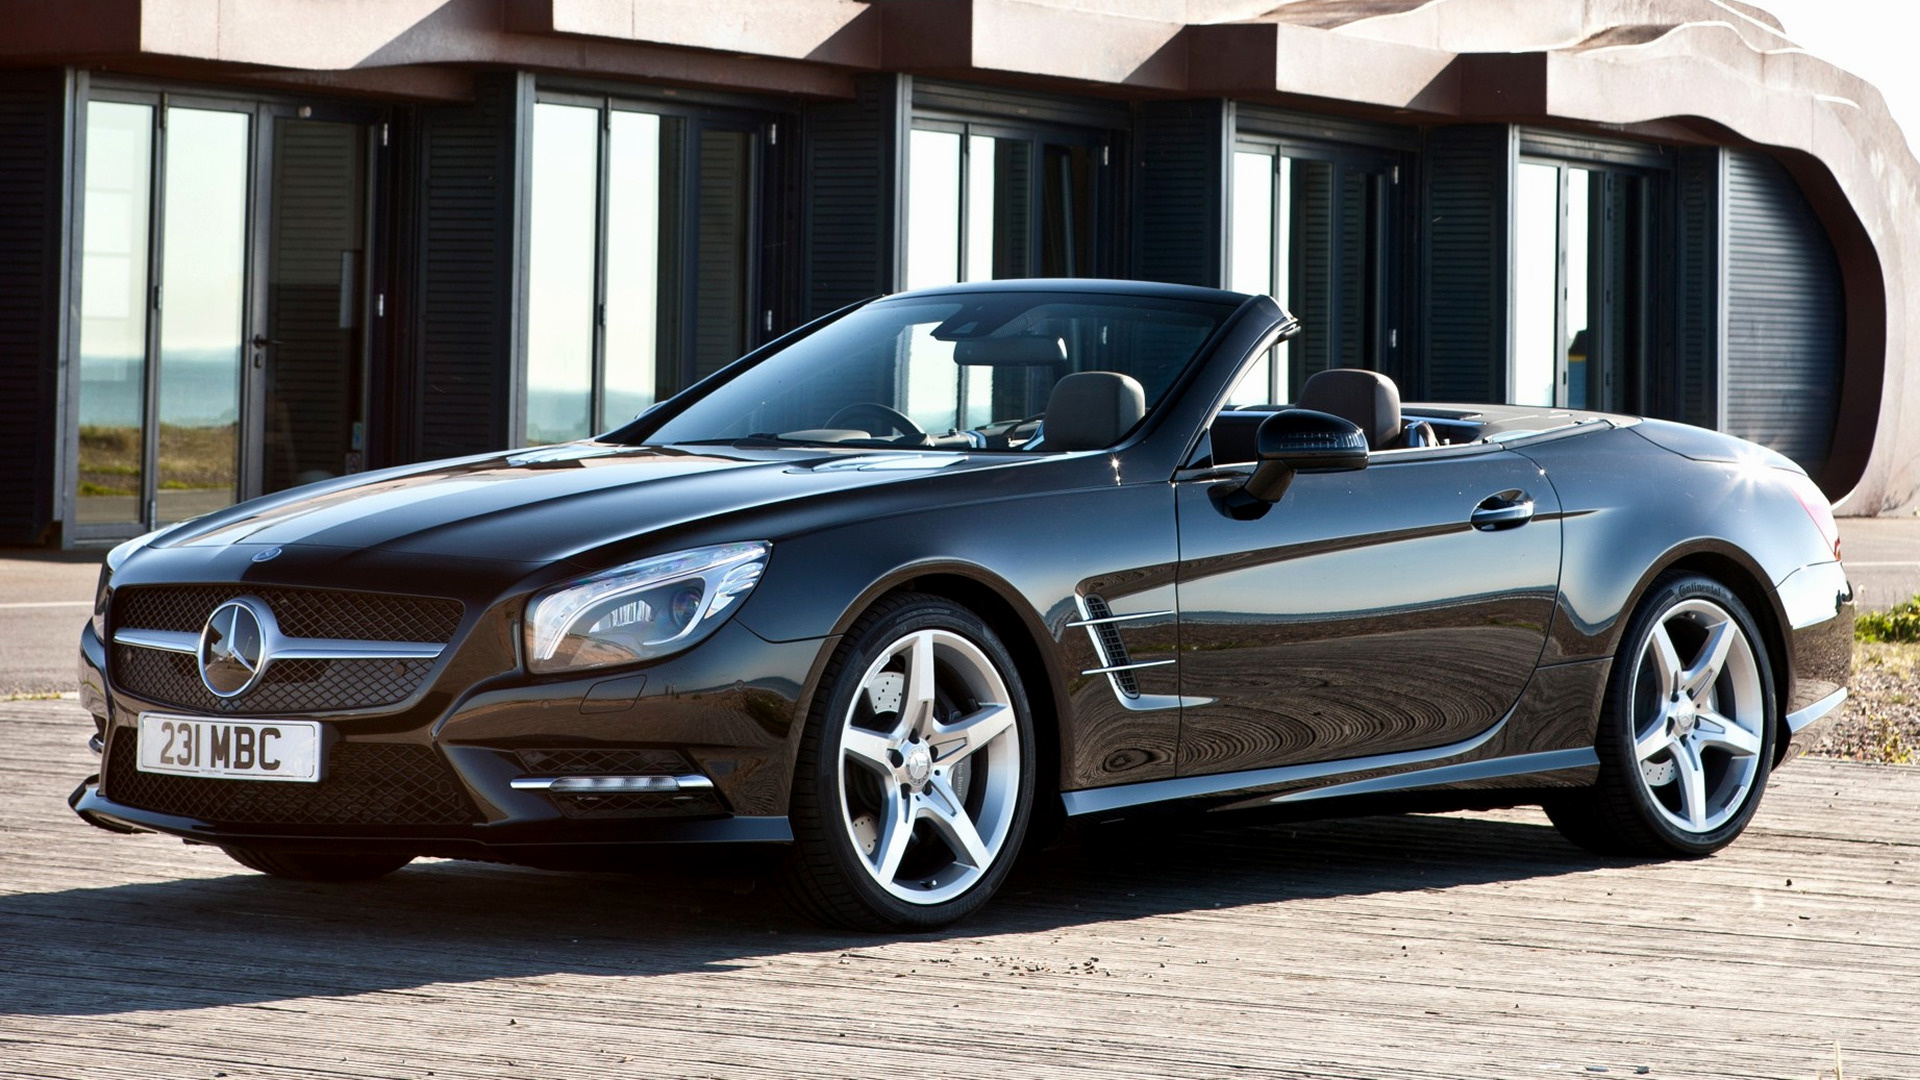 Mercedes benz sl class amg styling 2012 uk wallpapers for Mercedes benz sl class